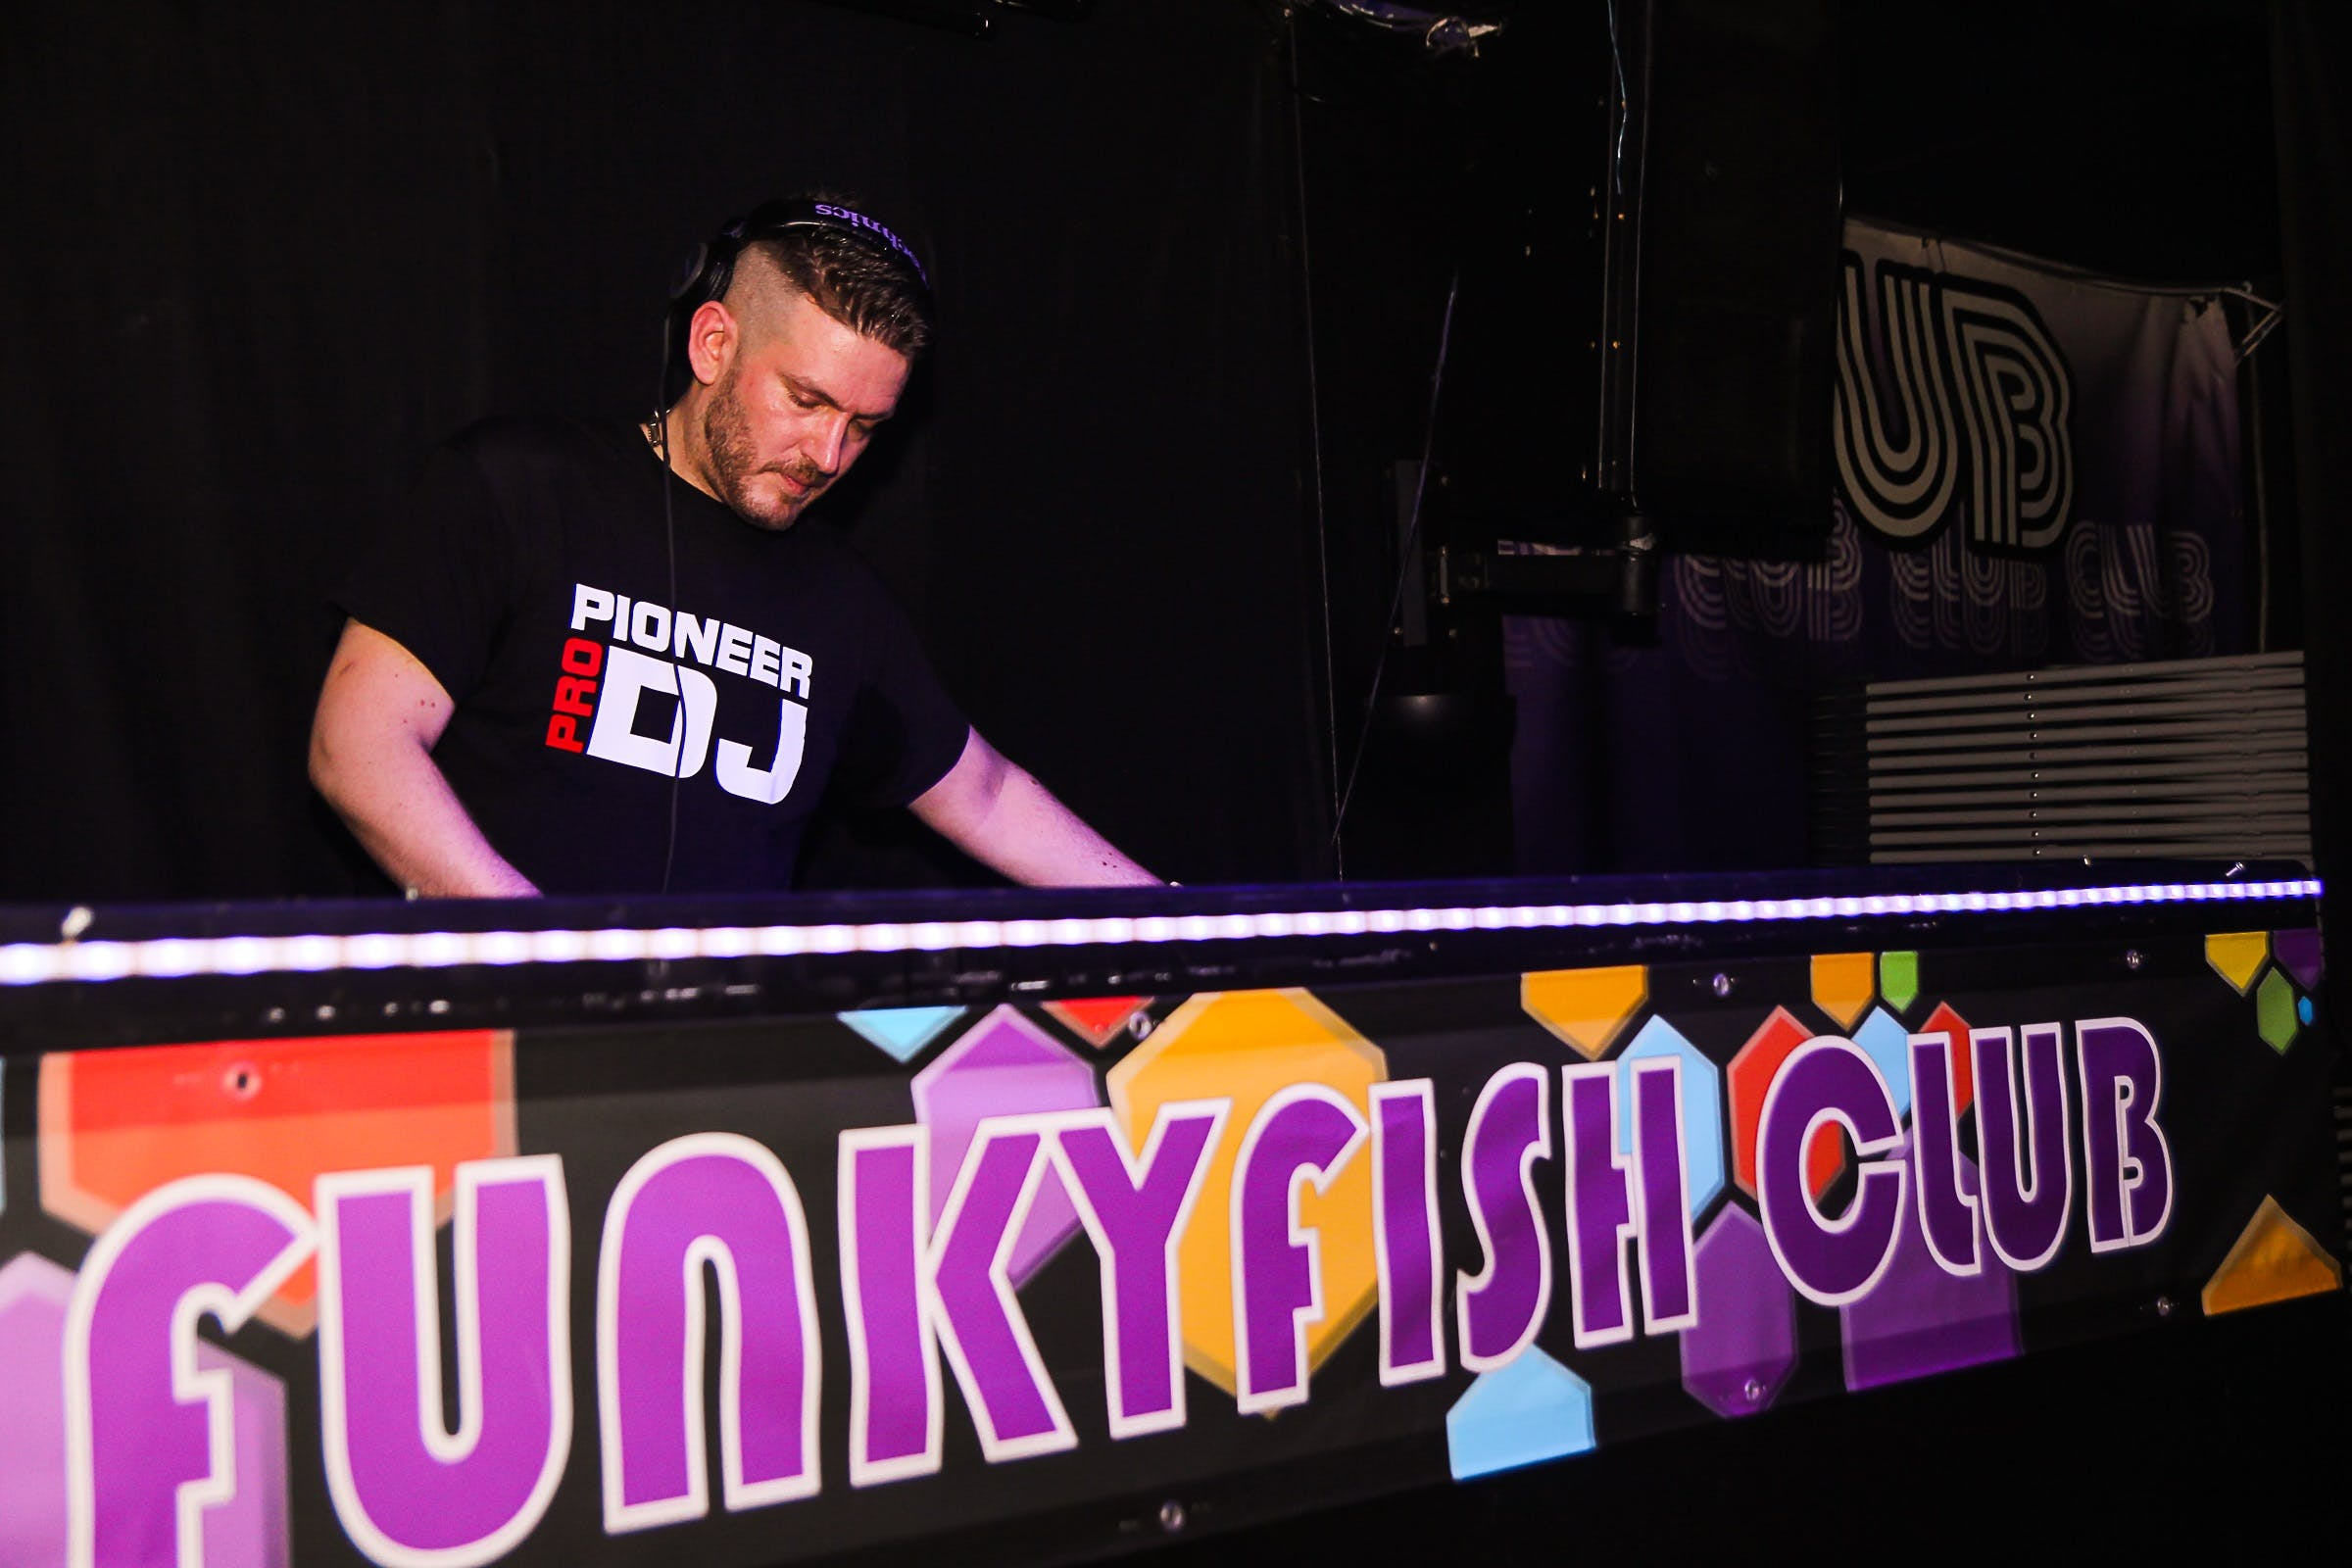 FunkyFish Club Brighton - Resident DJ